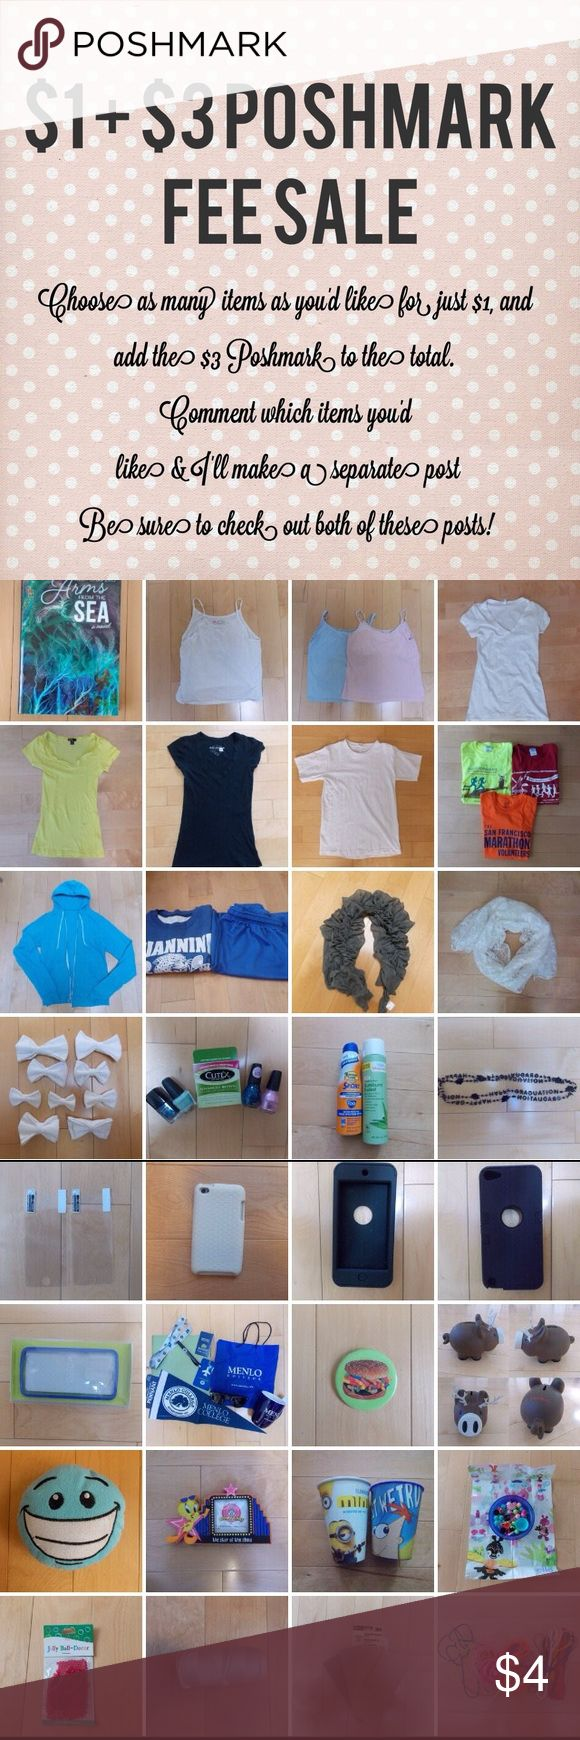 Clothing items have separate posts w/ more info $1 Clearance Sale! -Arms by the Sea by Rich Shapero -Hanes girl's tank top -2 Camisoles -White vneck w/ small foundation stain -Forever 21 Yellow vneck -Arizona Jean Company Black vneck -White Tee -3 Volunteer Tees -American Apparel Blue Jacket, broken zipper -APG MS PE Uniform -Grey Scarf -Lace Scarf -1 White bow -Nailpolish ($1 each) -Sunblock -Aloe spray -2 Graduation Necklaces -1 iPod Touch/iPhone 5th gen screen protector -iPod Touch 4th…